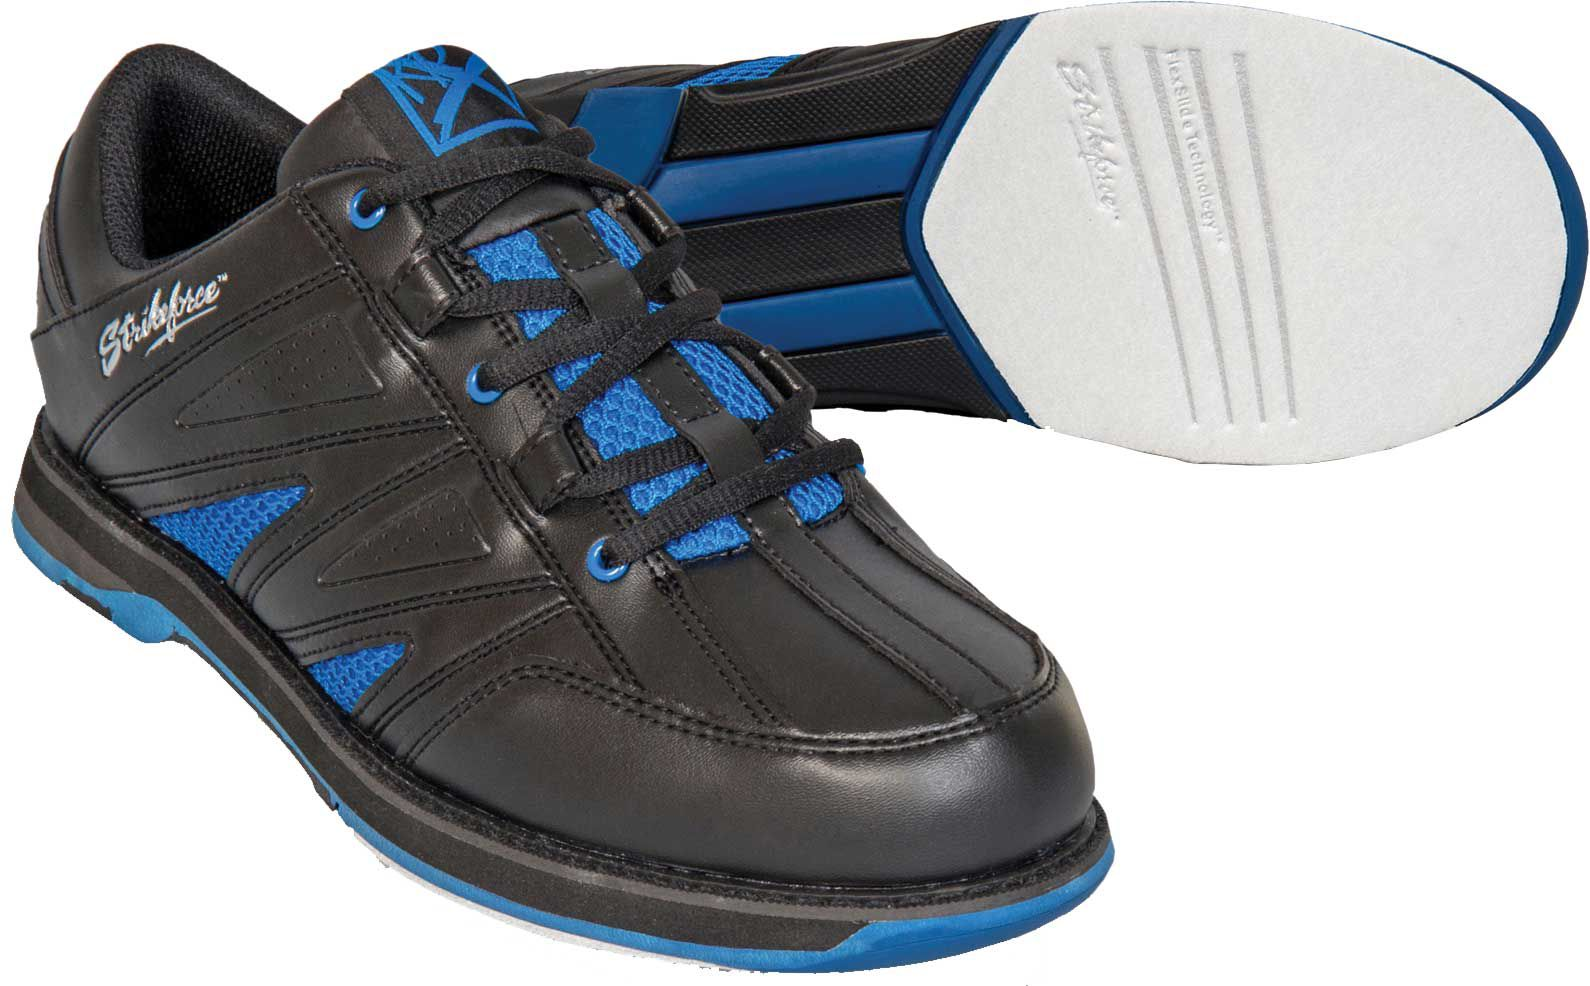 KR Strikeforce Men's Warrior Bowling Shoes| DICK'S Sporting Goods